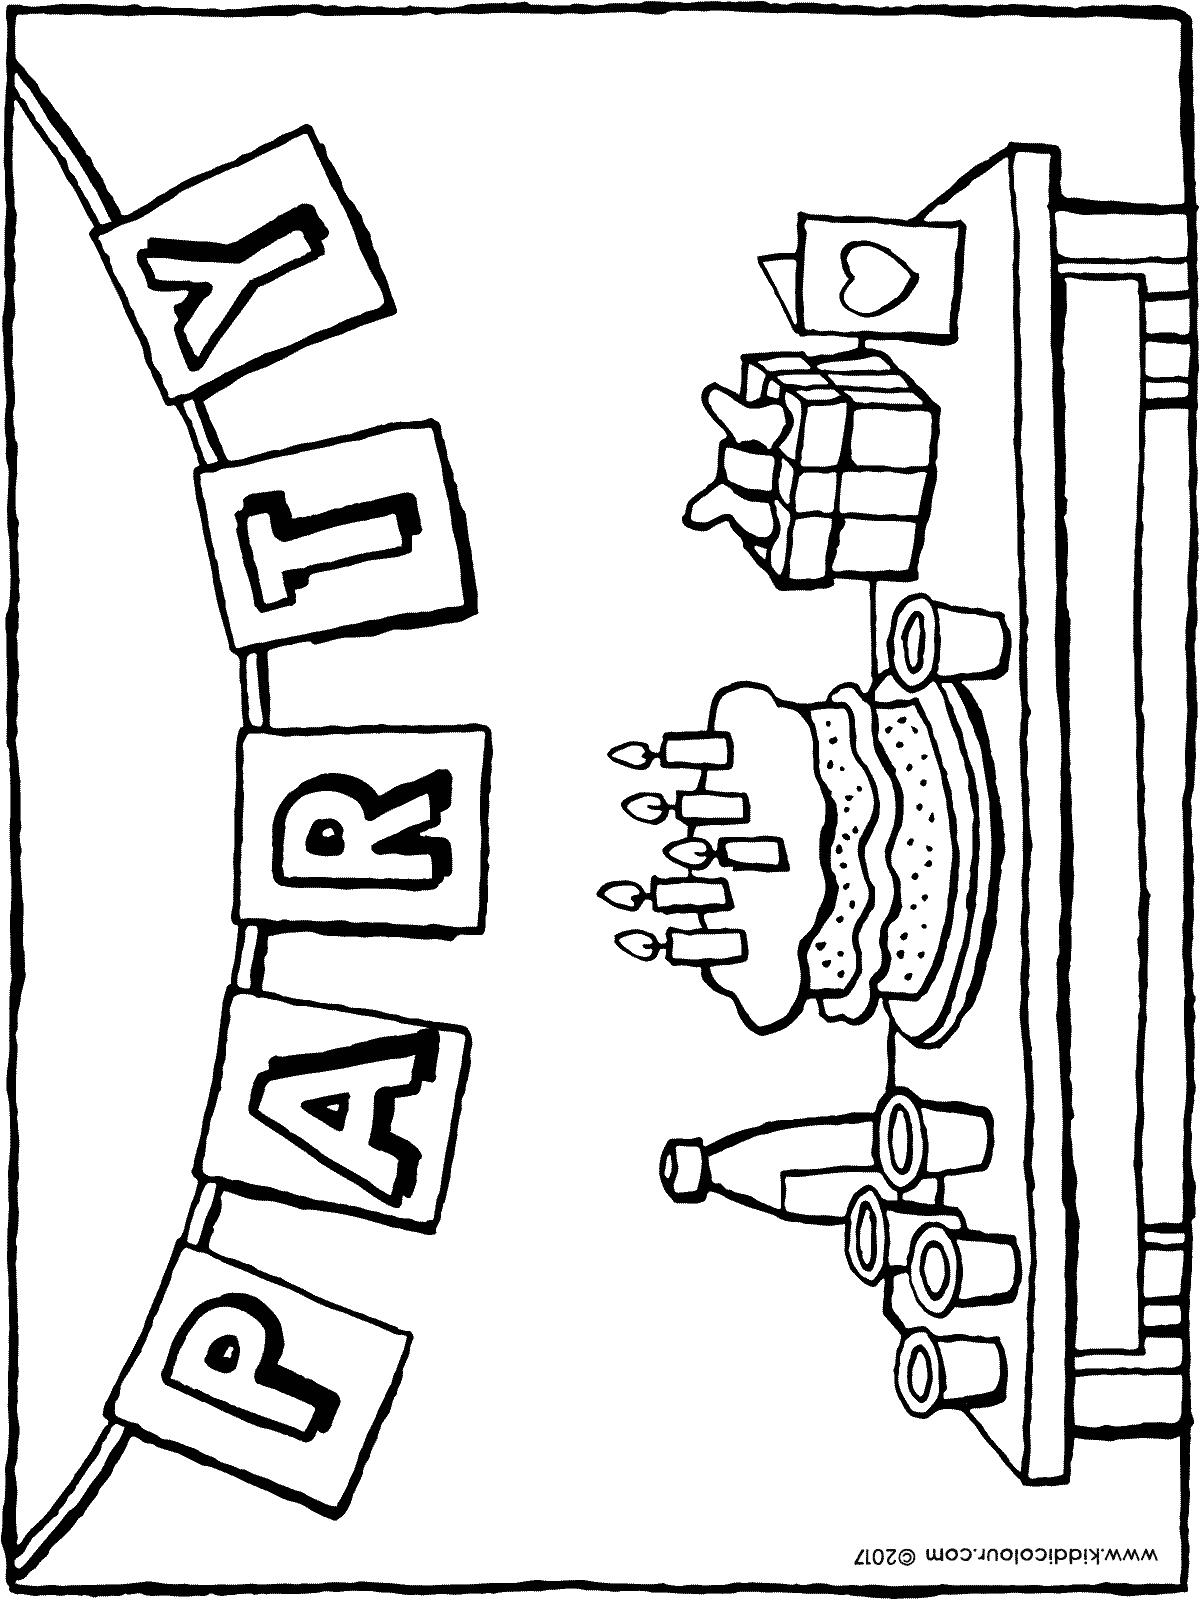 drawing of my birthday party ; are-you-coming-to-my-birthday-party-colouring-page-01H